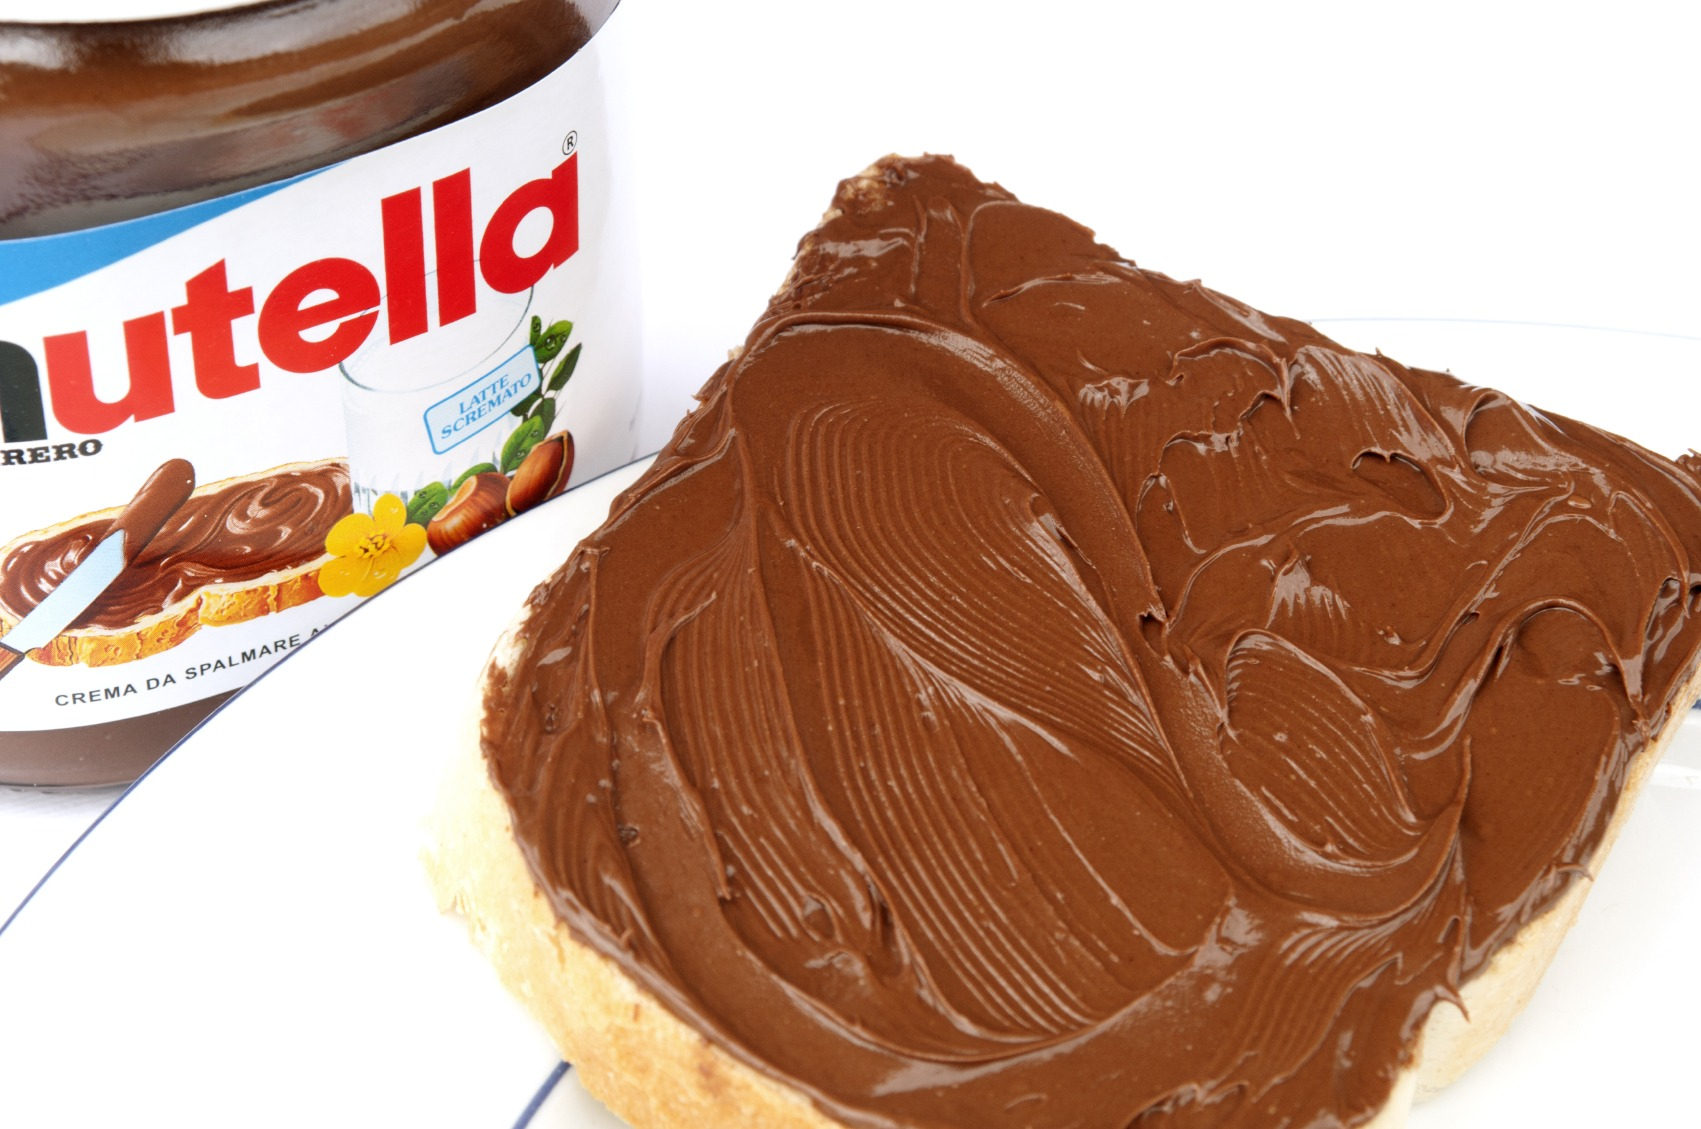 Weekly Economic News Roundup and Nutella Supply